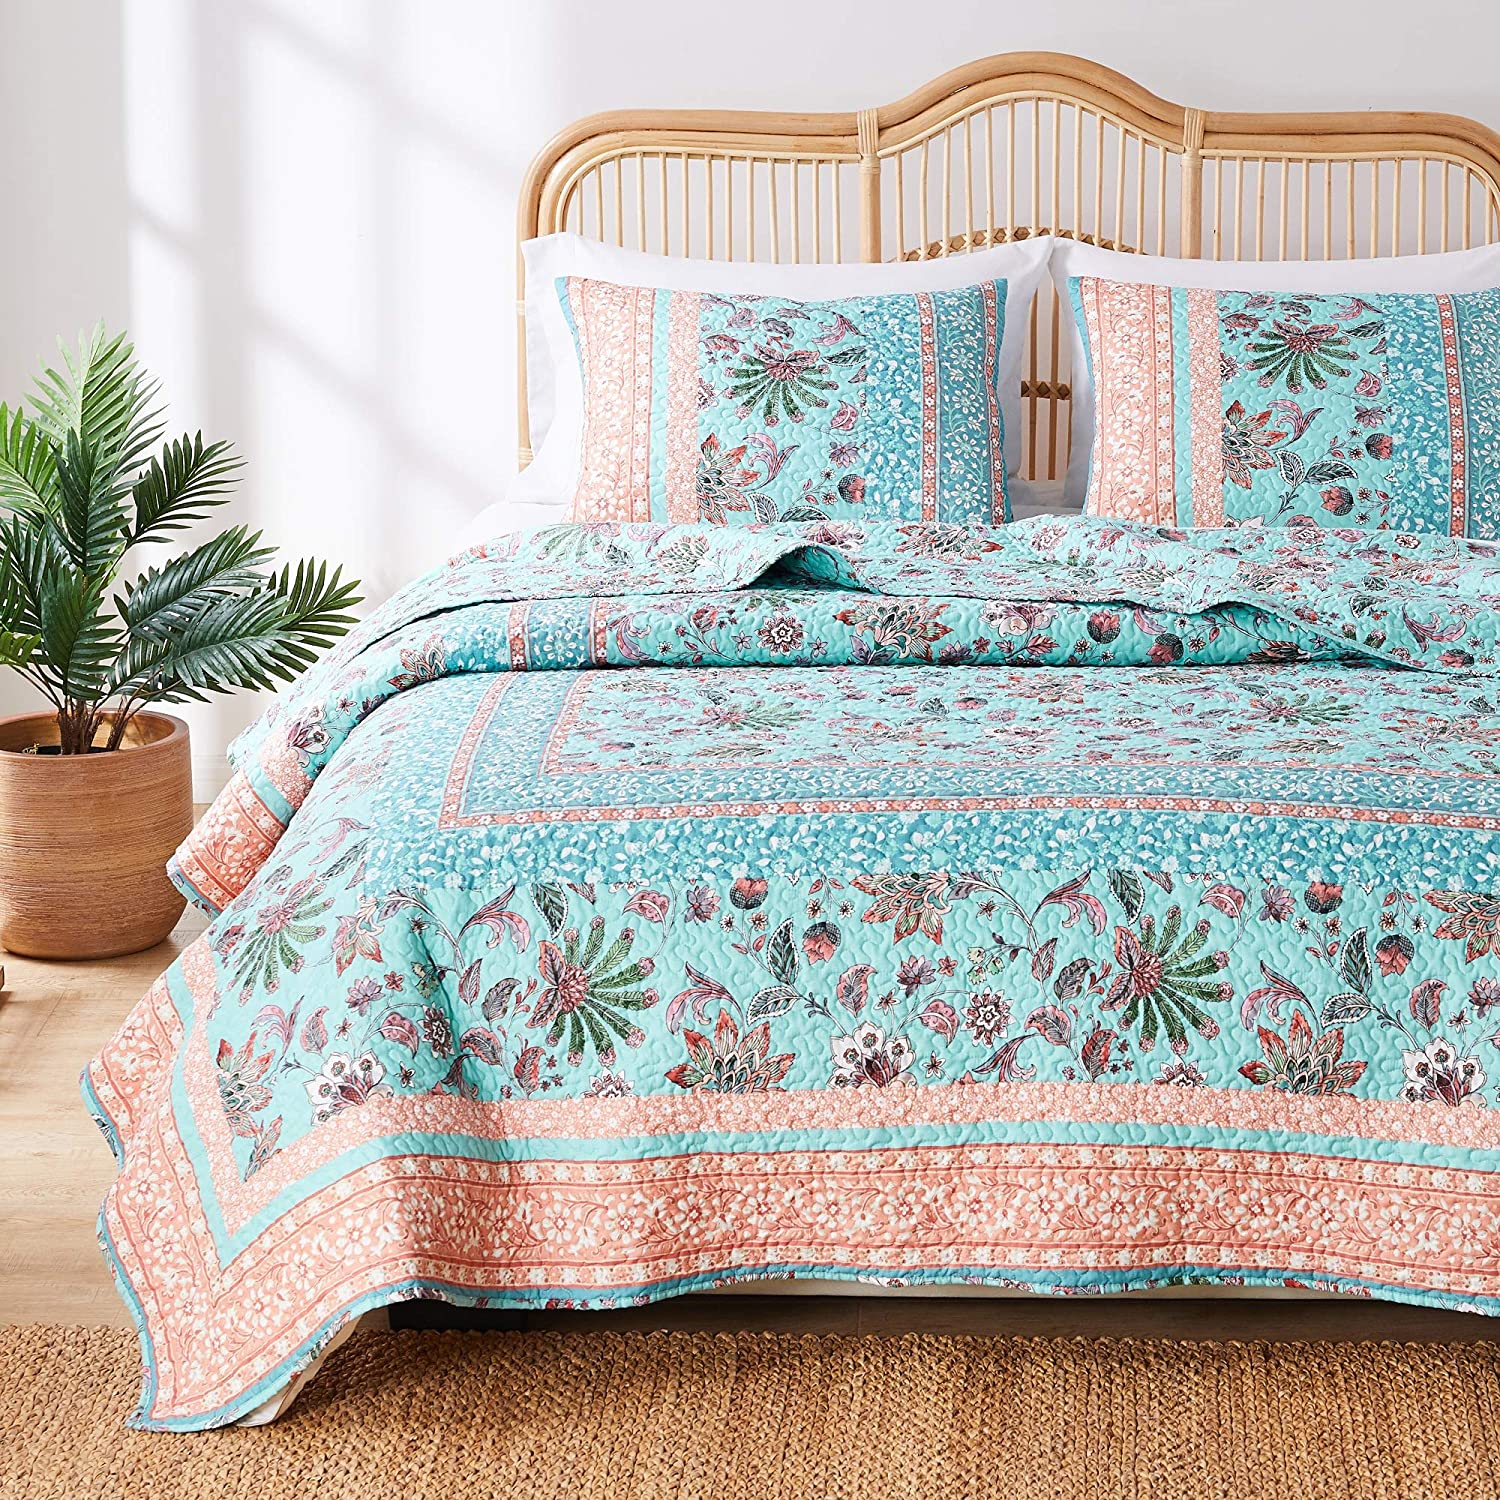 Greenland Home Barefoot Bungalow Audrey Quilt Set, 2-Piece Twin/XL, Turquoise